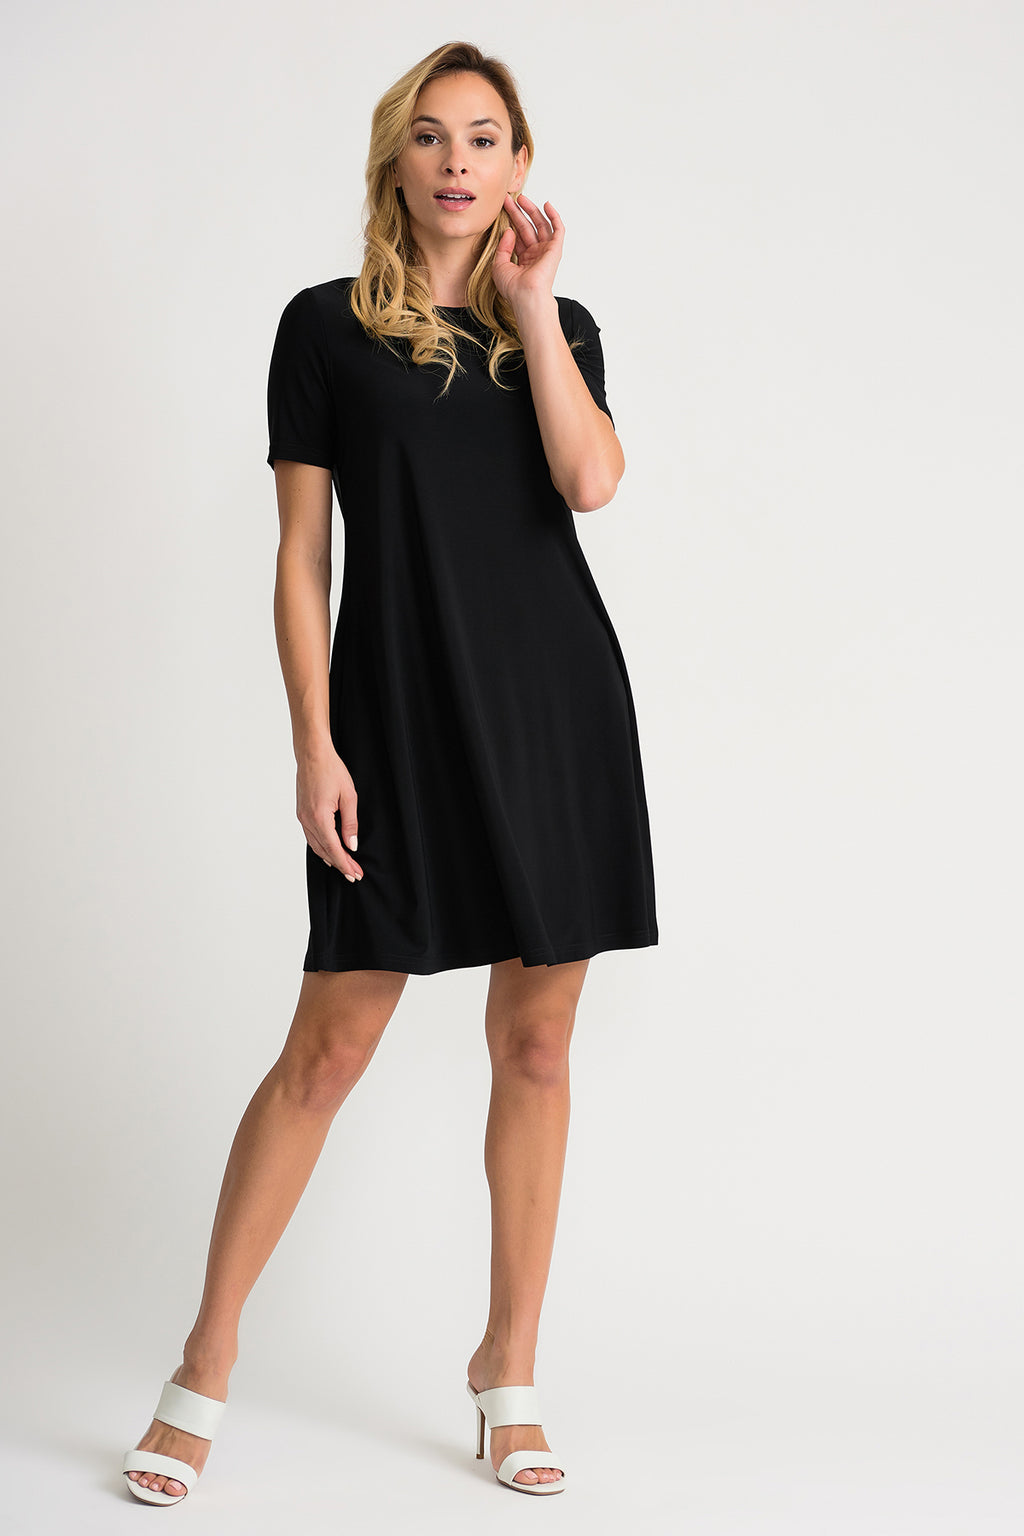 Solid Basic Dress